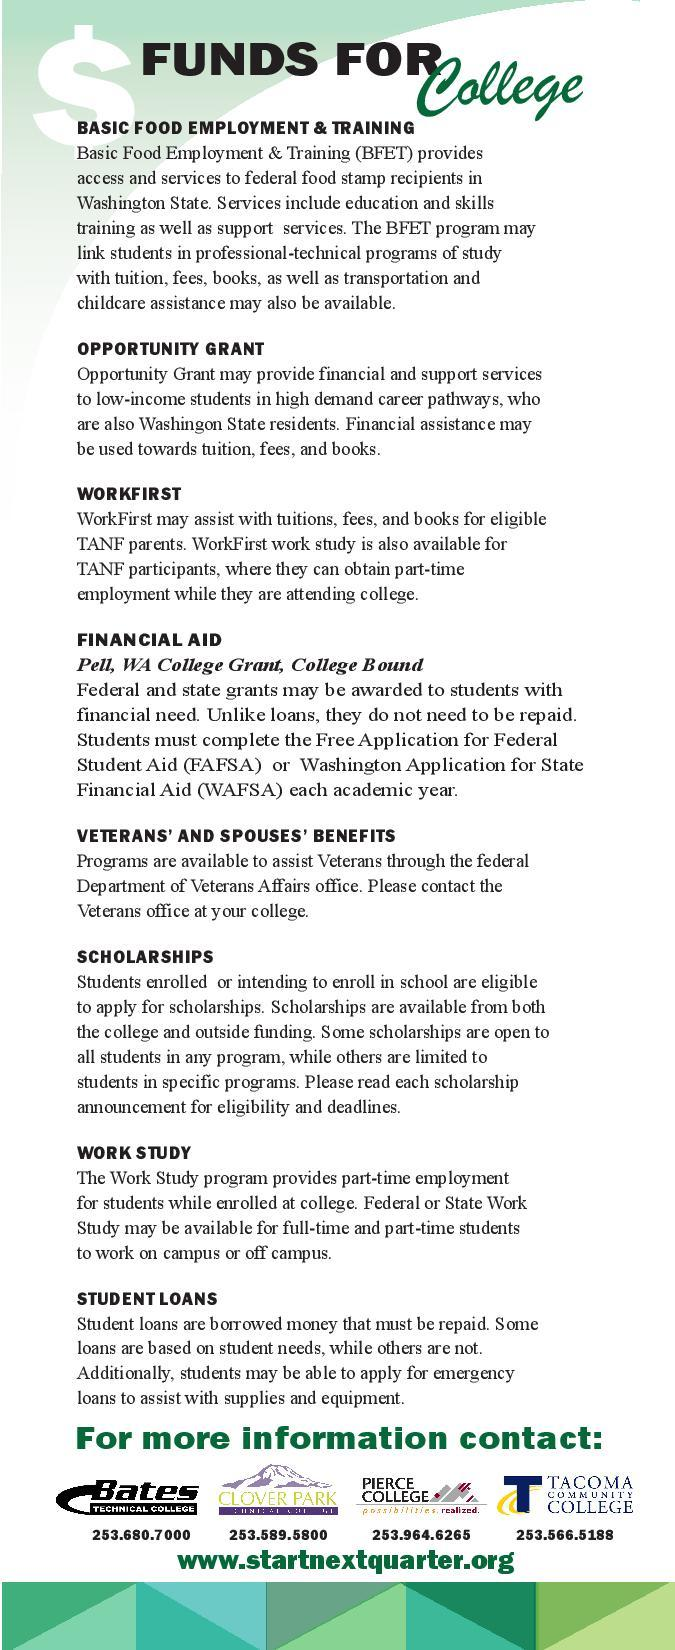 Funds for College flyer